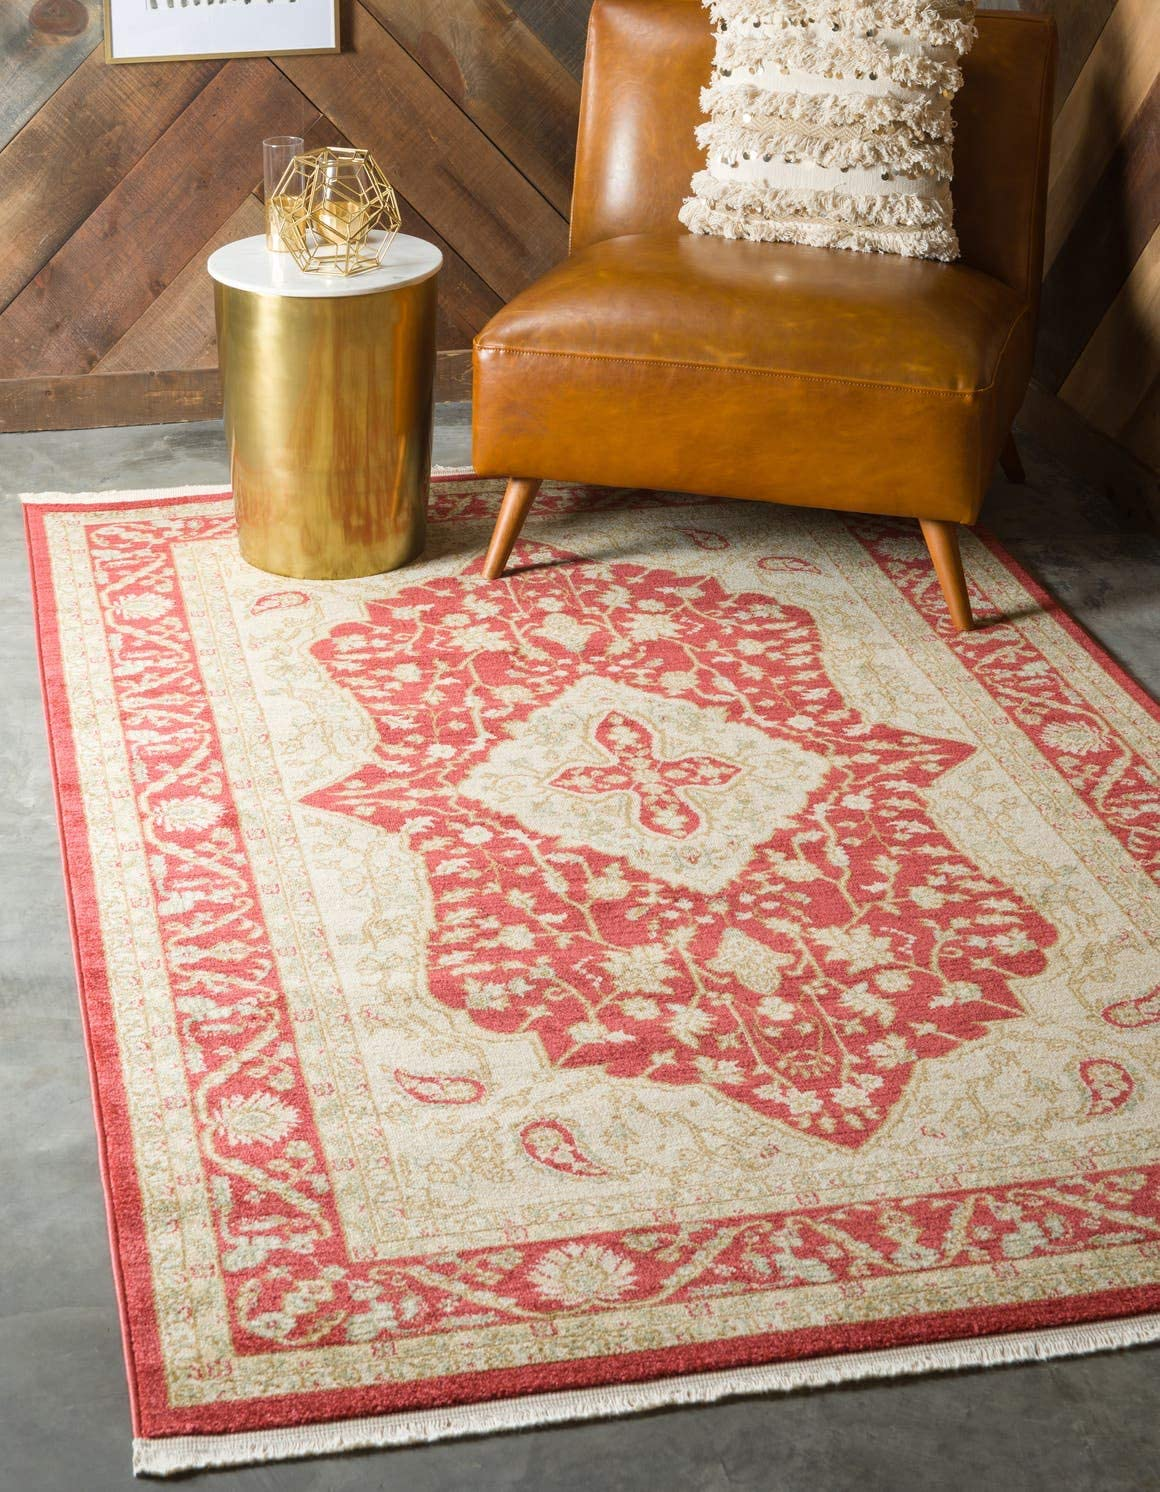 Unique Loom Edinburgh Collection Oriental Traditional French Country Red Area Rug 10 6 x 16 5